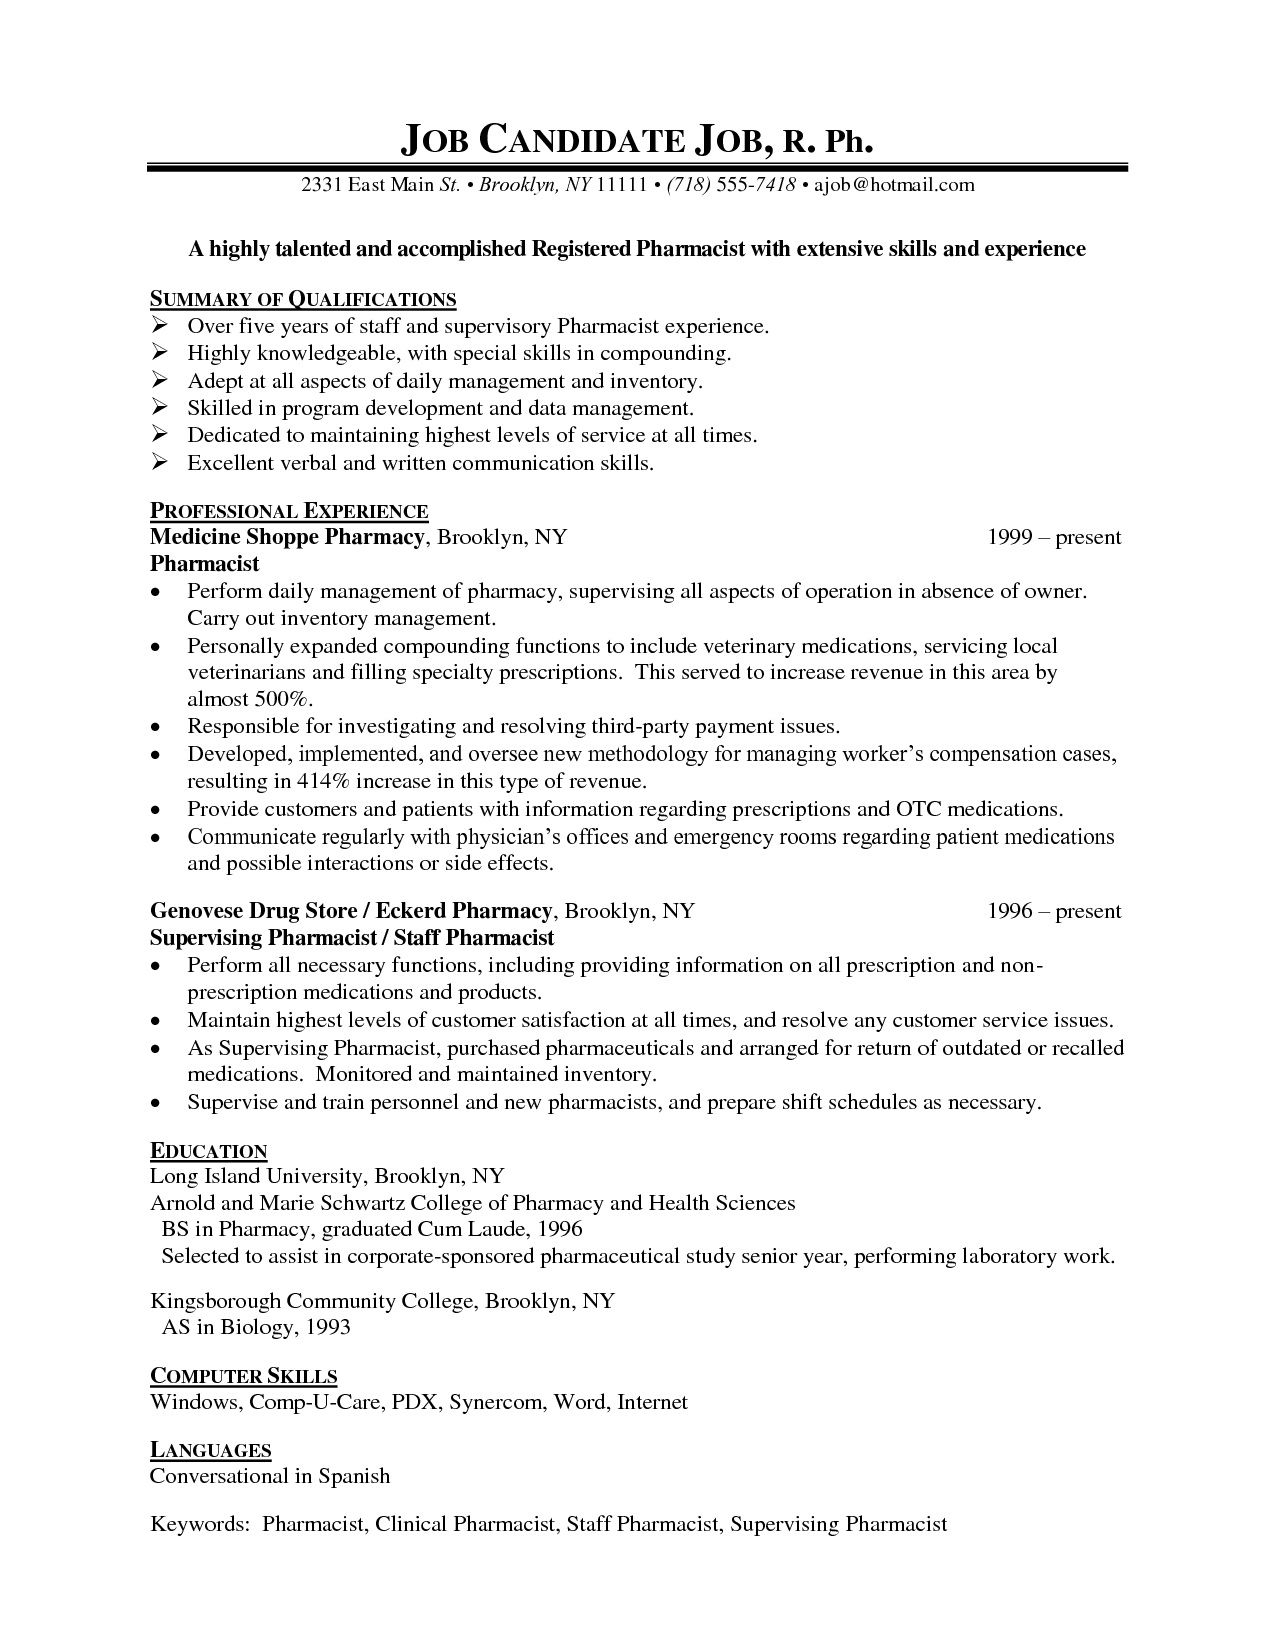 Pharmacist Resume Sample Pharmacist Resume Examples  Httptopresumepharmacist